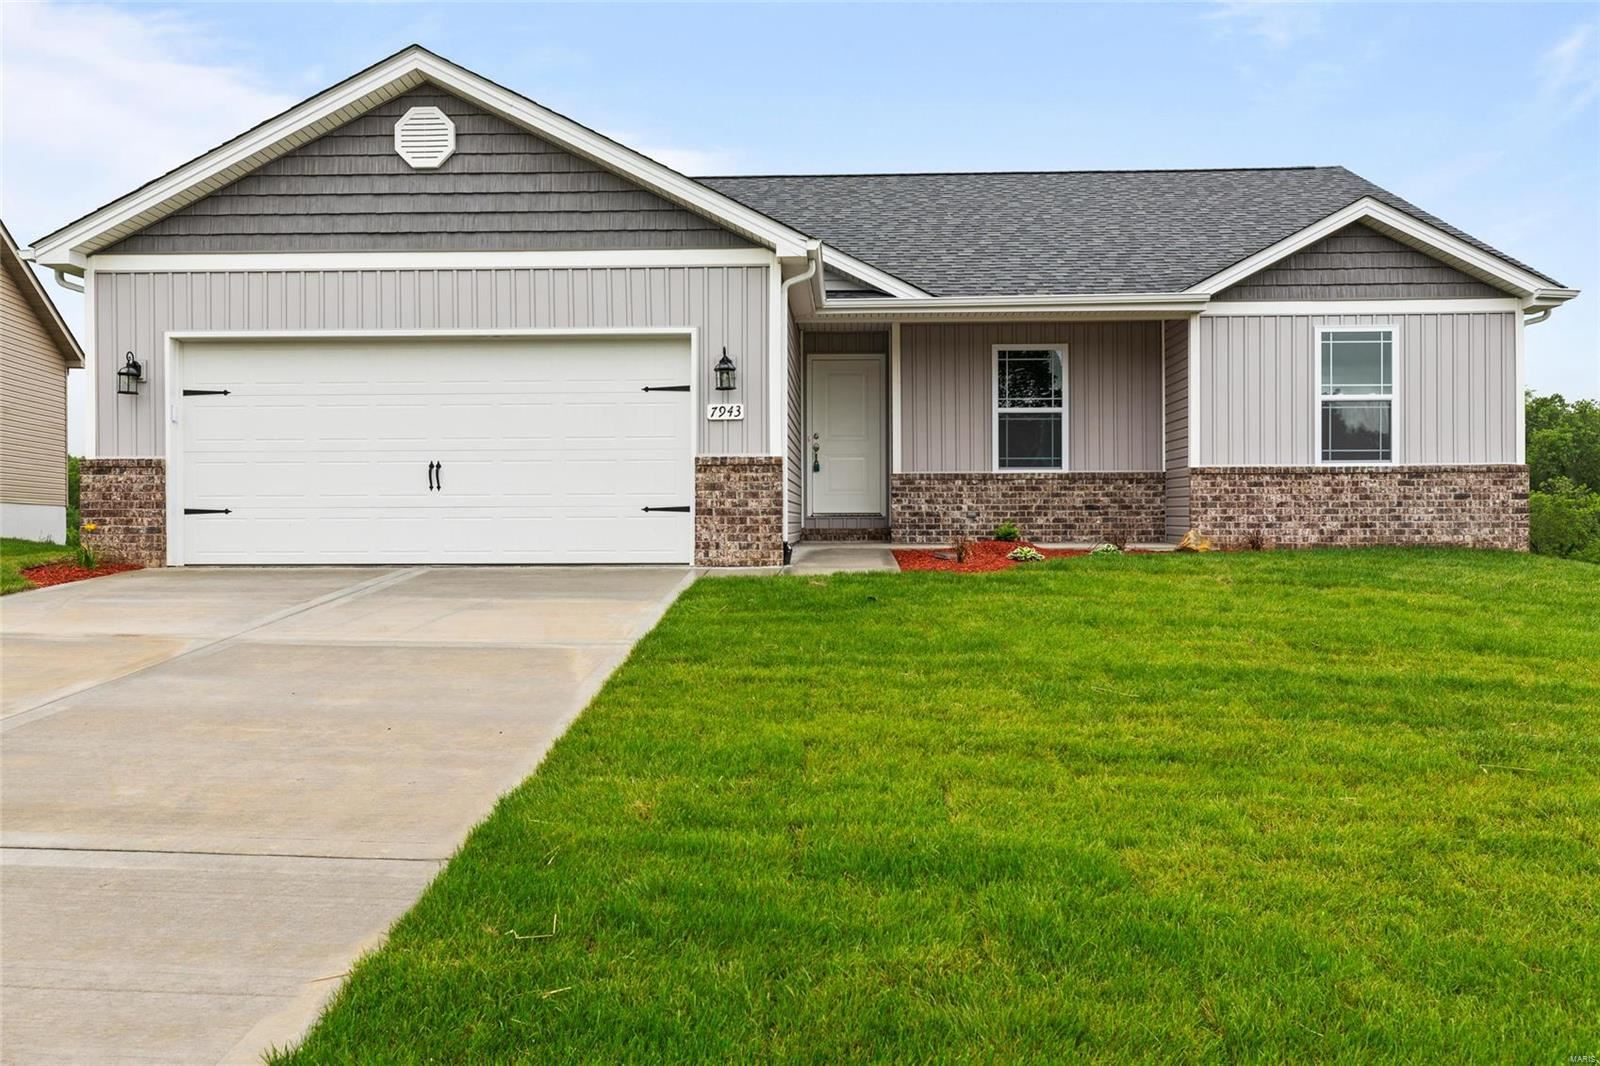 7943 Sonora Ridge, Caseyville, IL 62232 - MLS#: 20012893